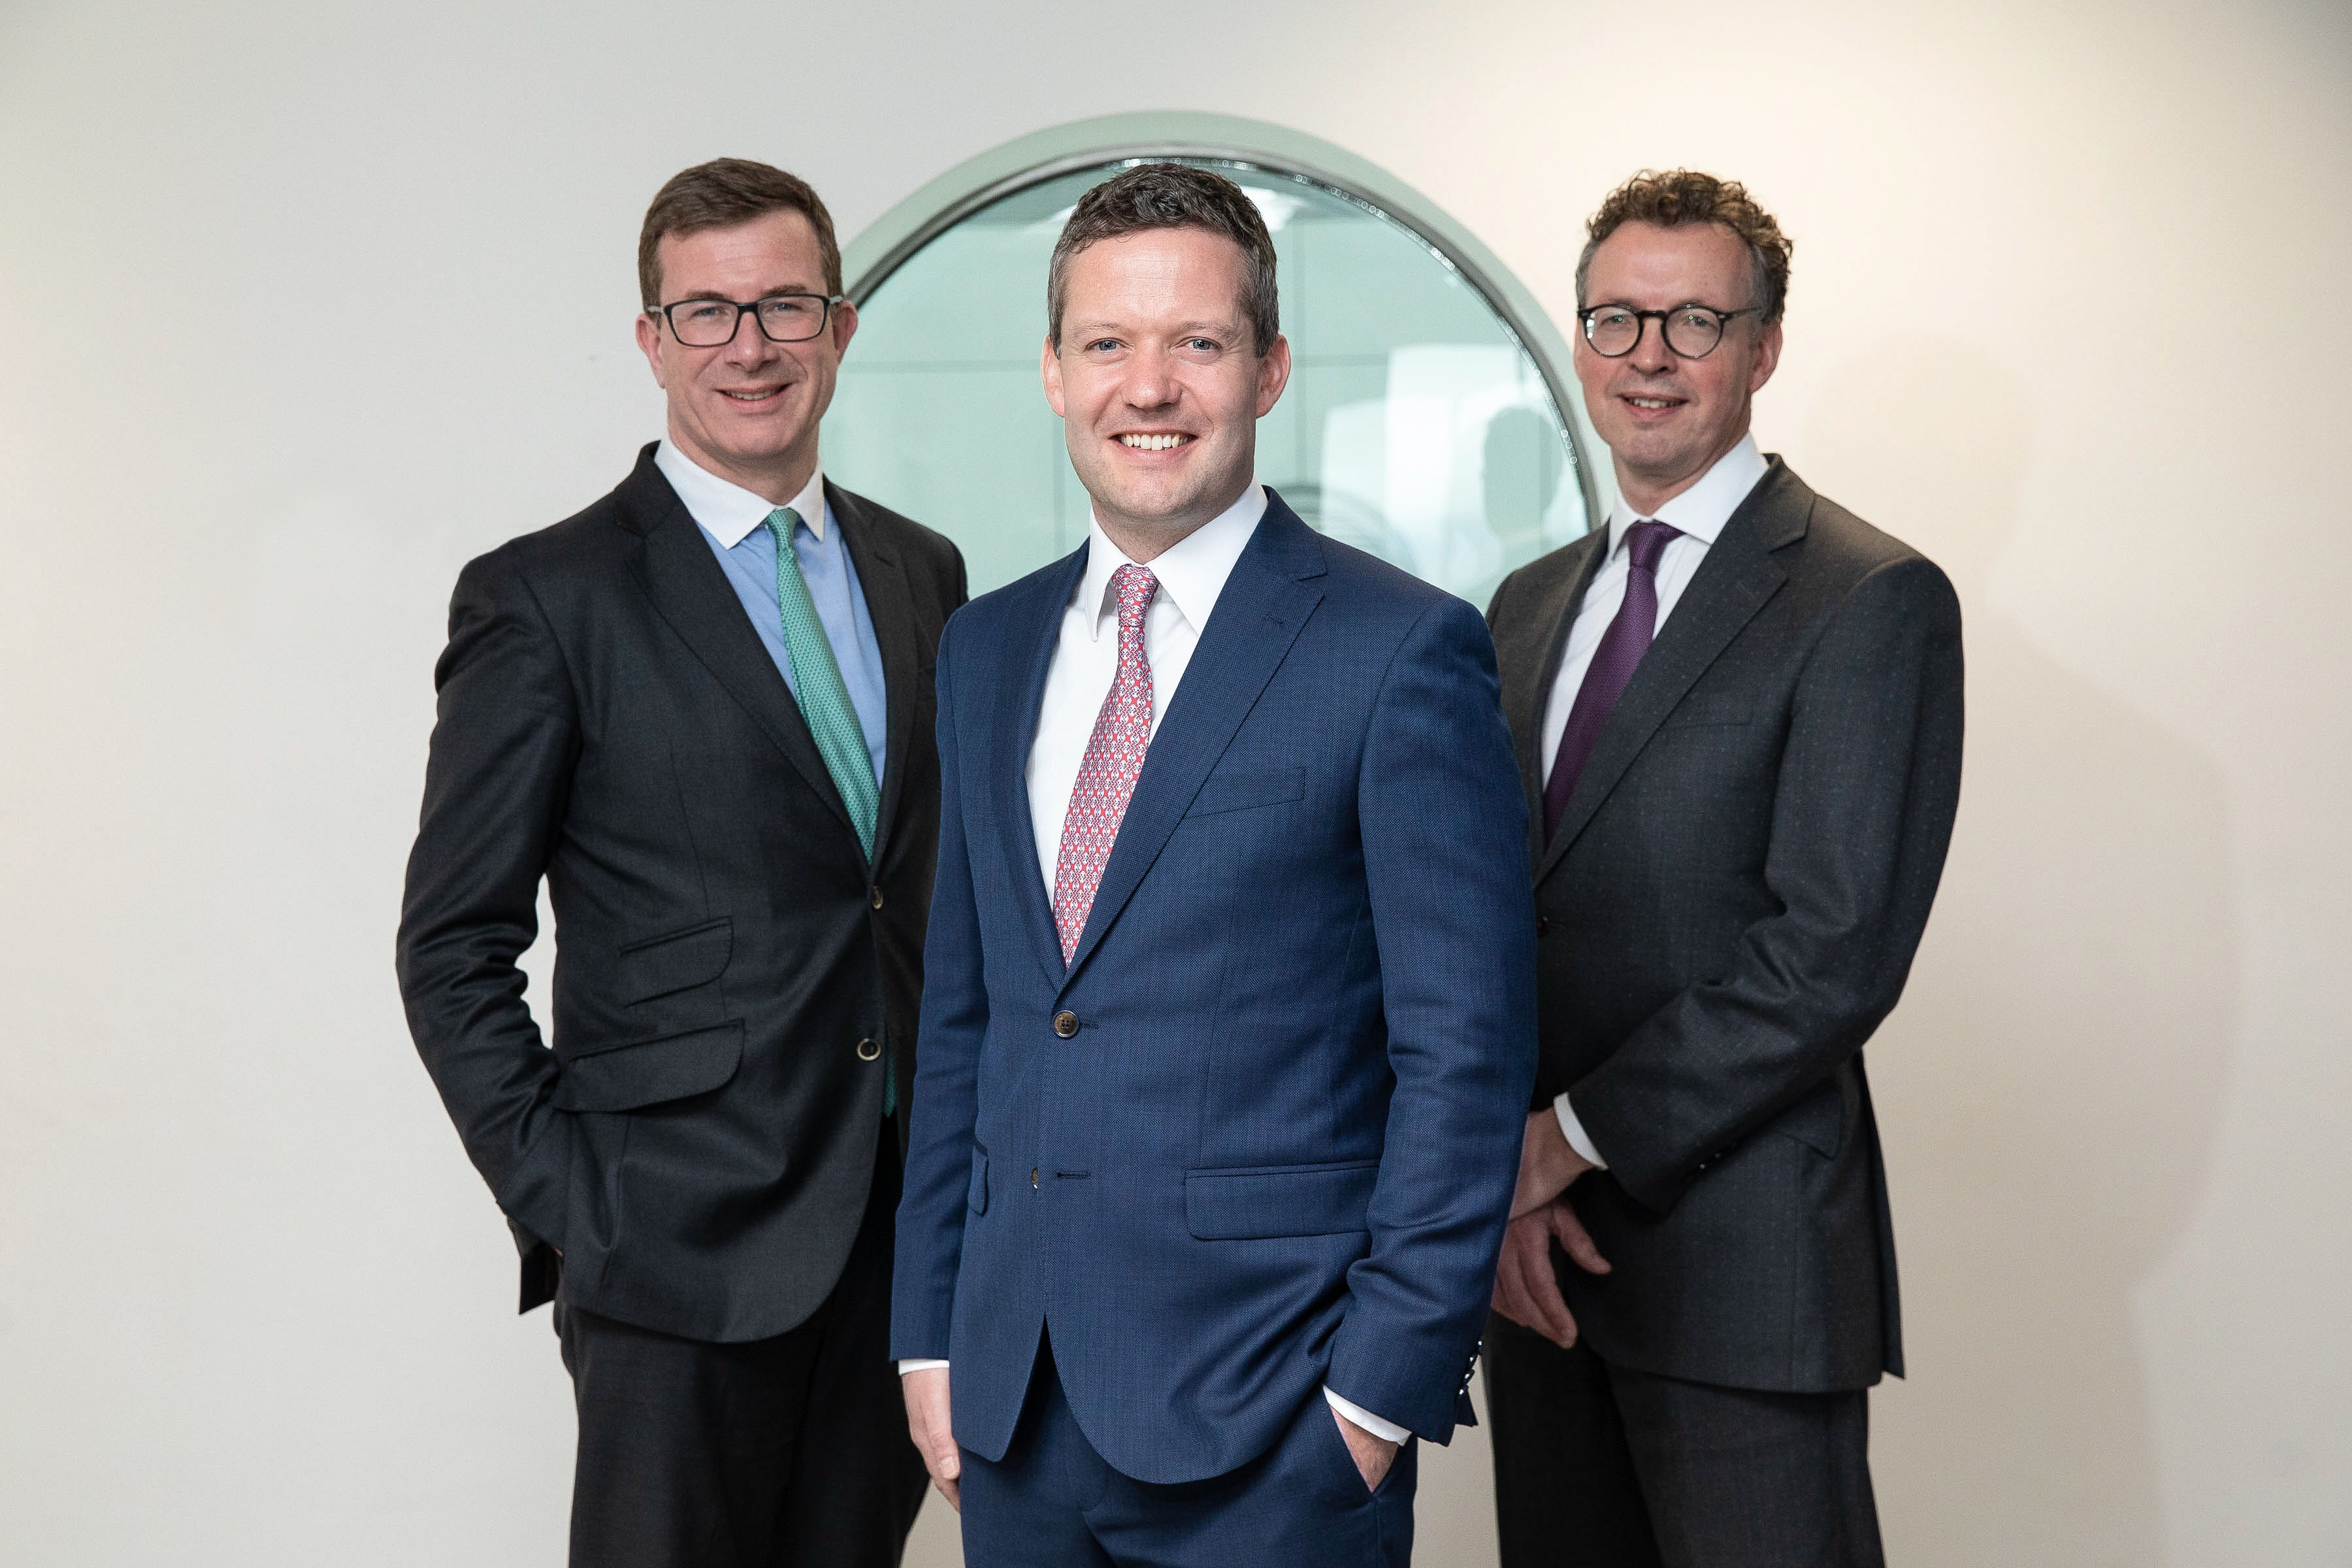 A&L Goodbody appoints Kerill O'Shaughnessy as asset management and investment funds partner